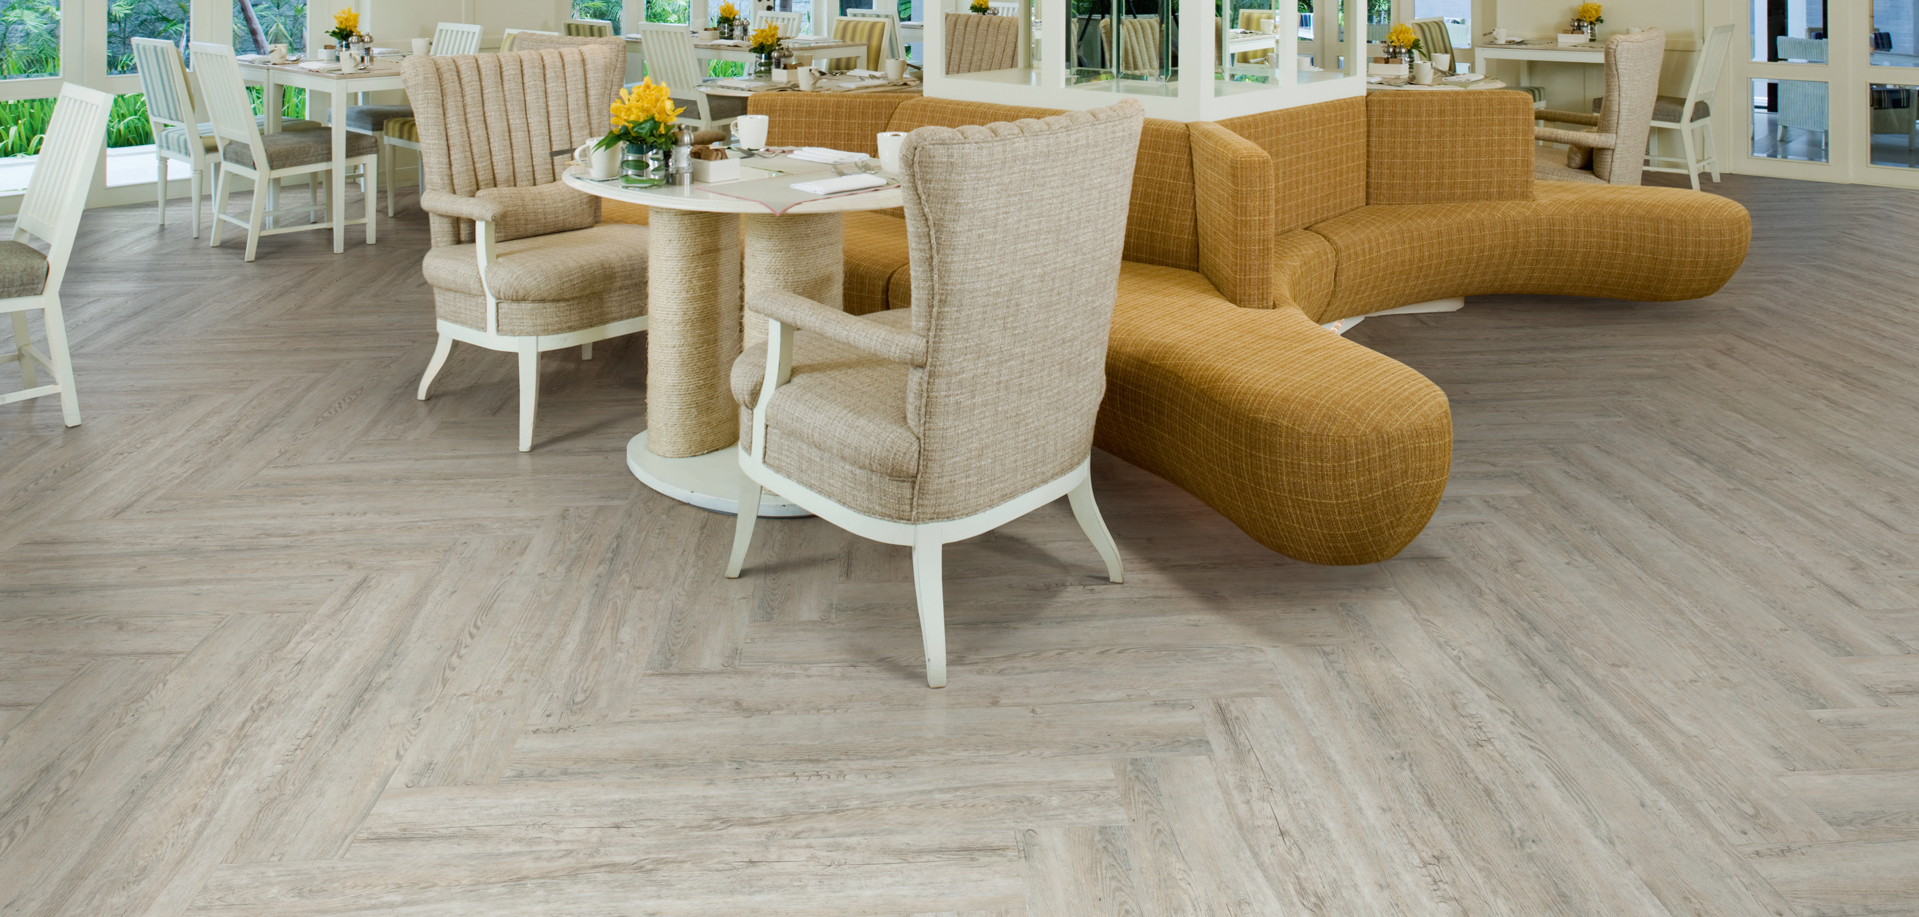 What's the difference between vinyl and laminate flooring?